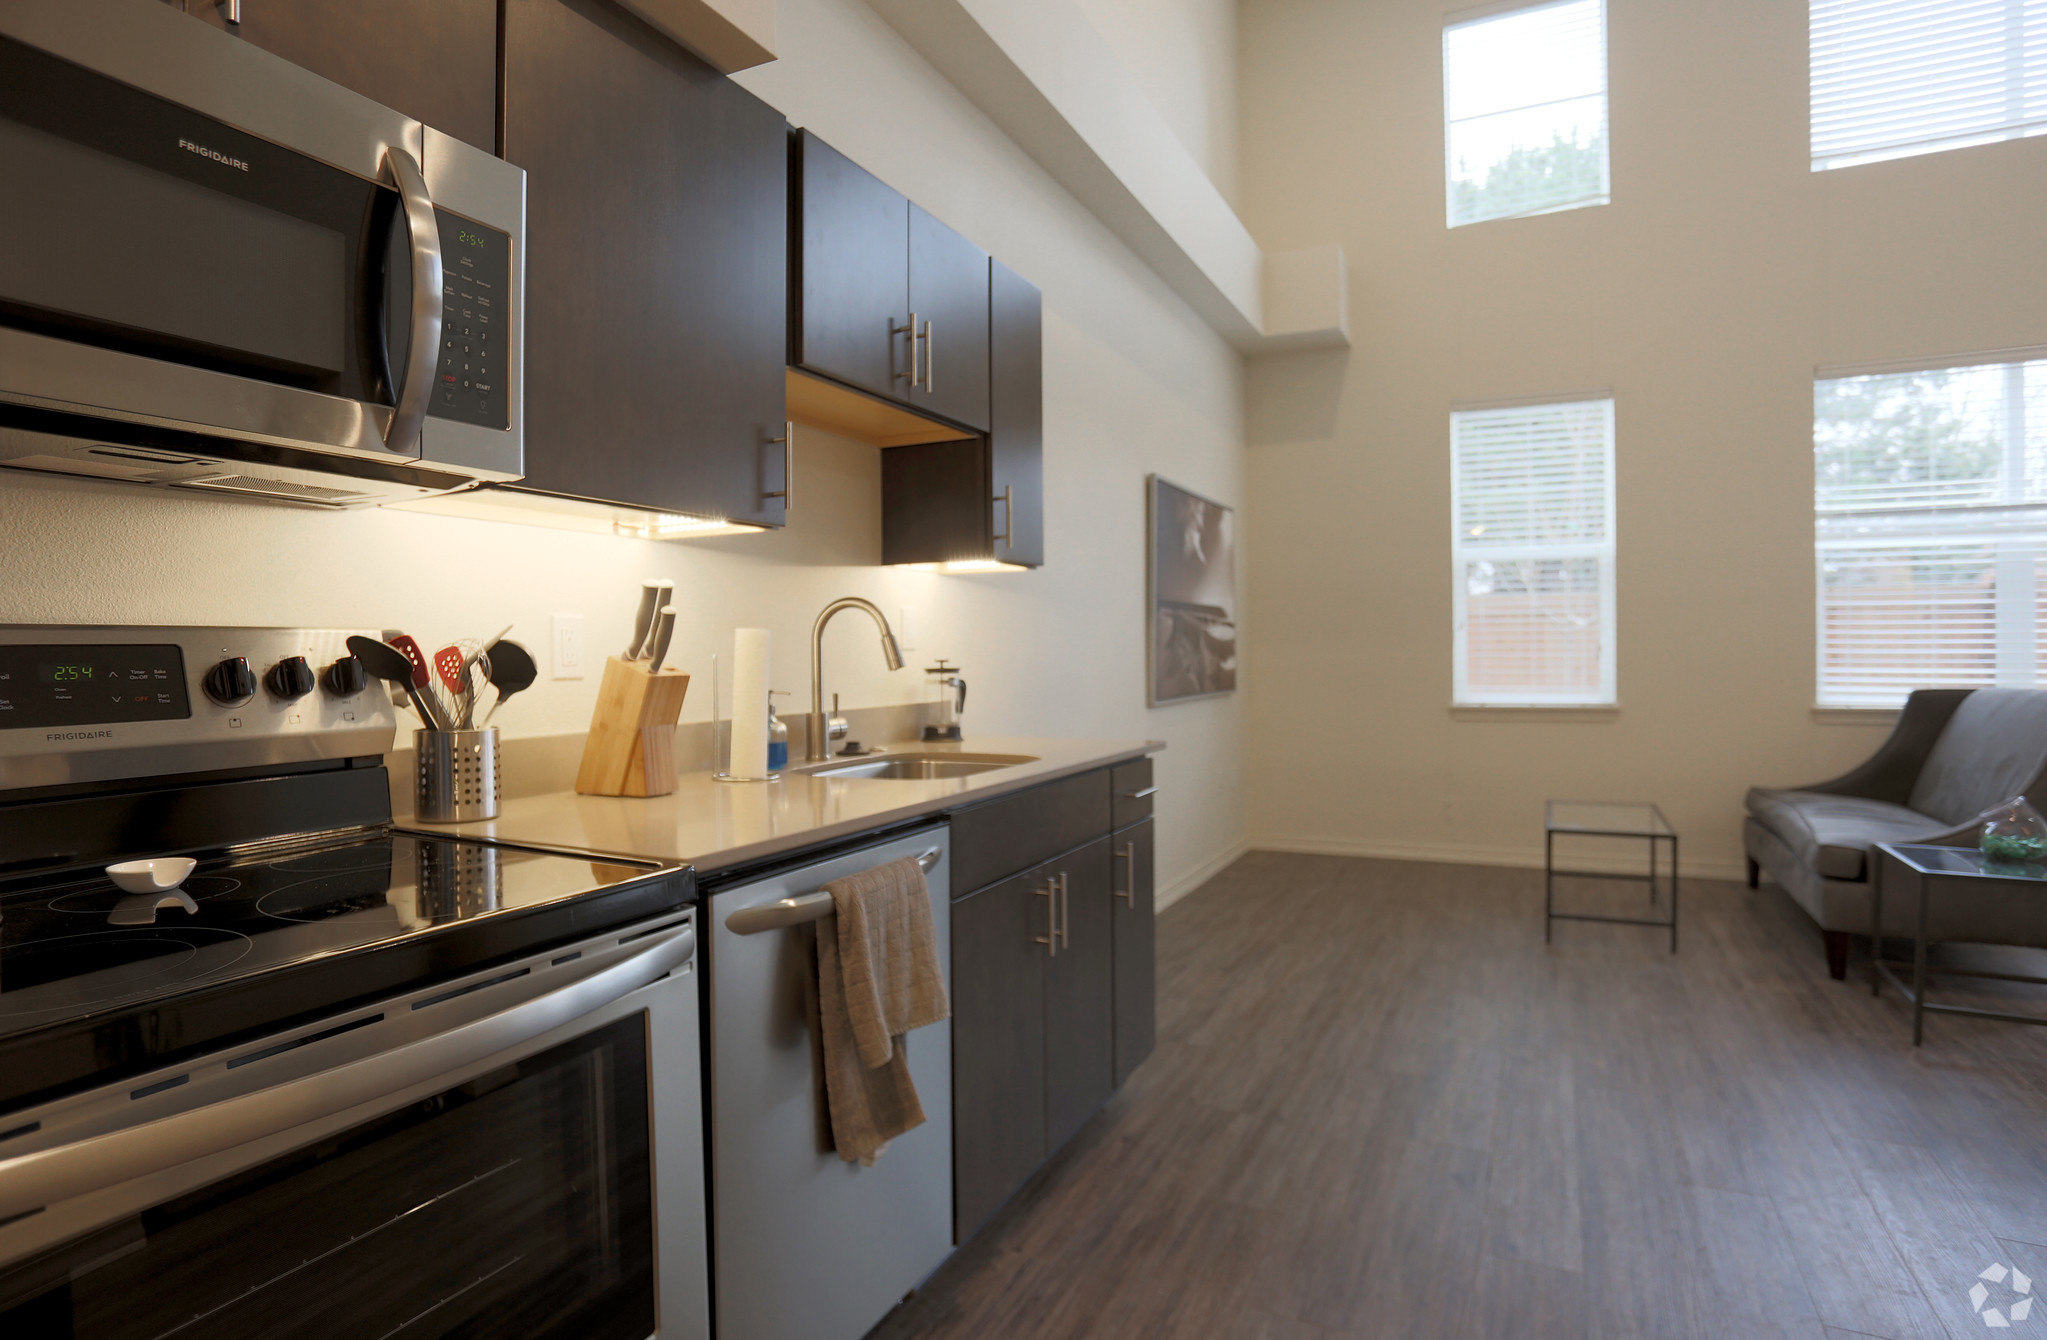 st-js-cathedral-flats-portland-or-interior-photo.jpg